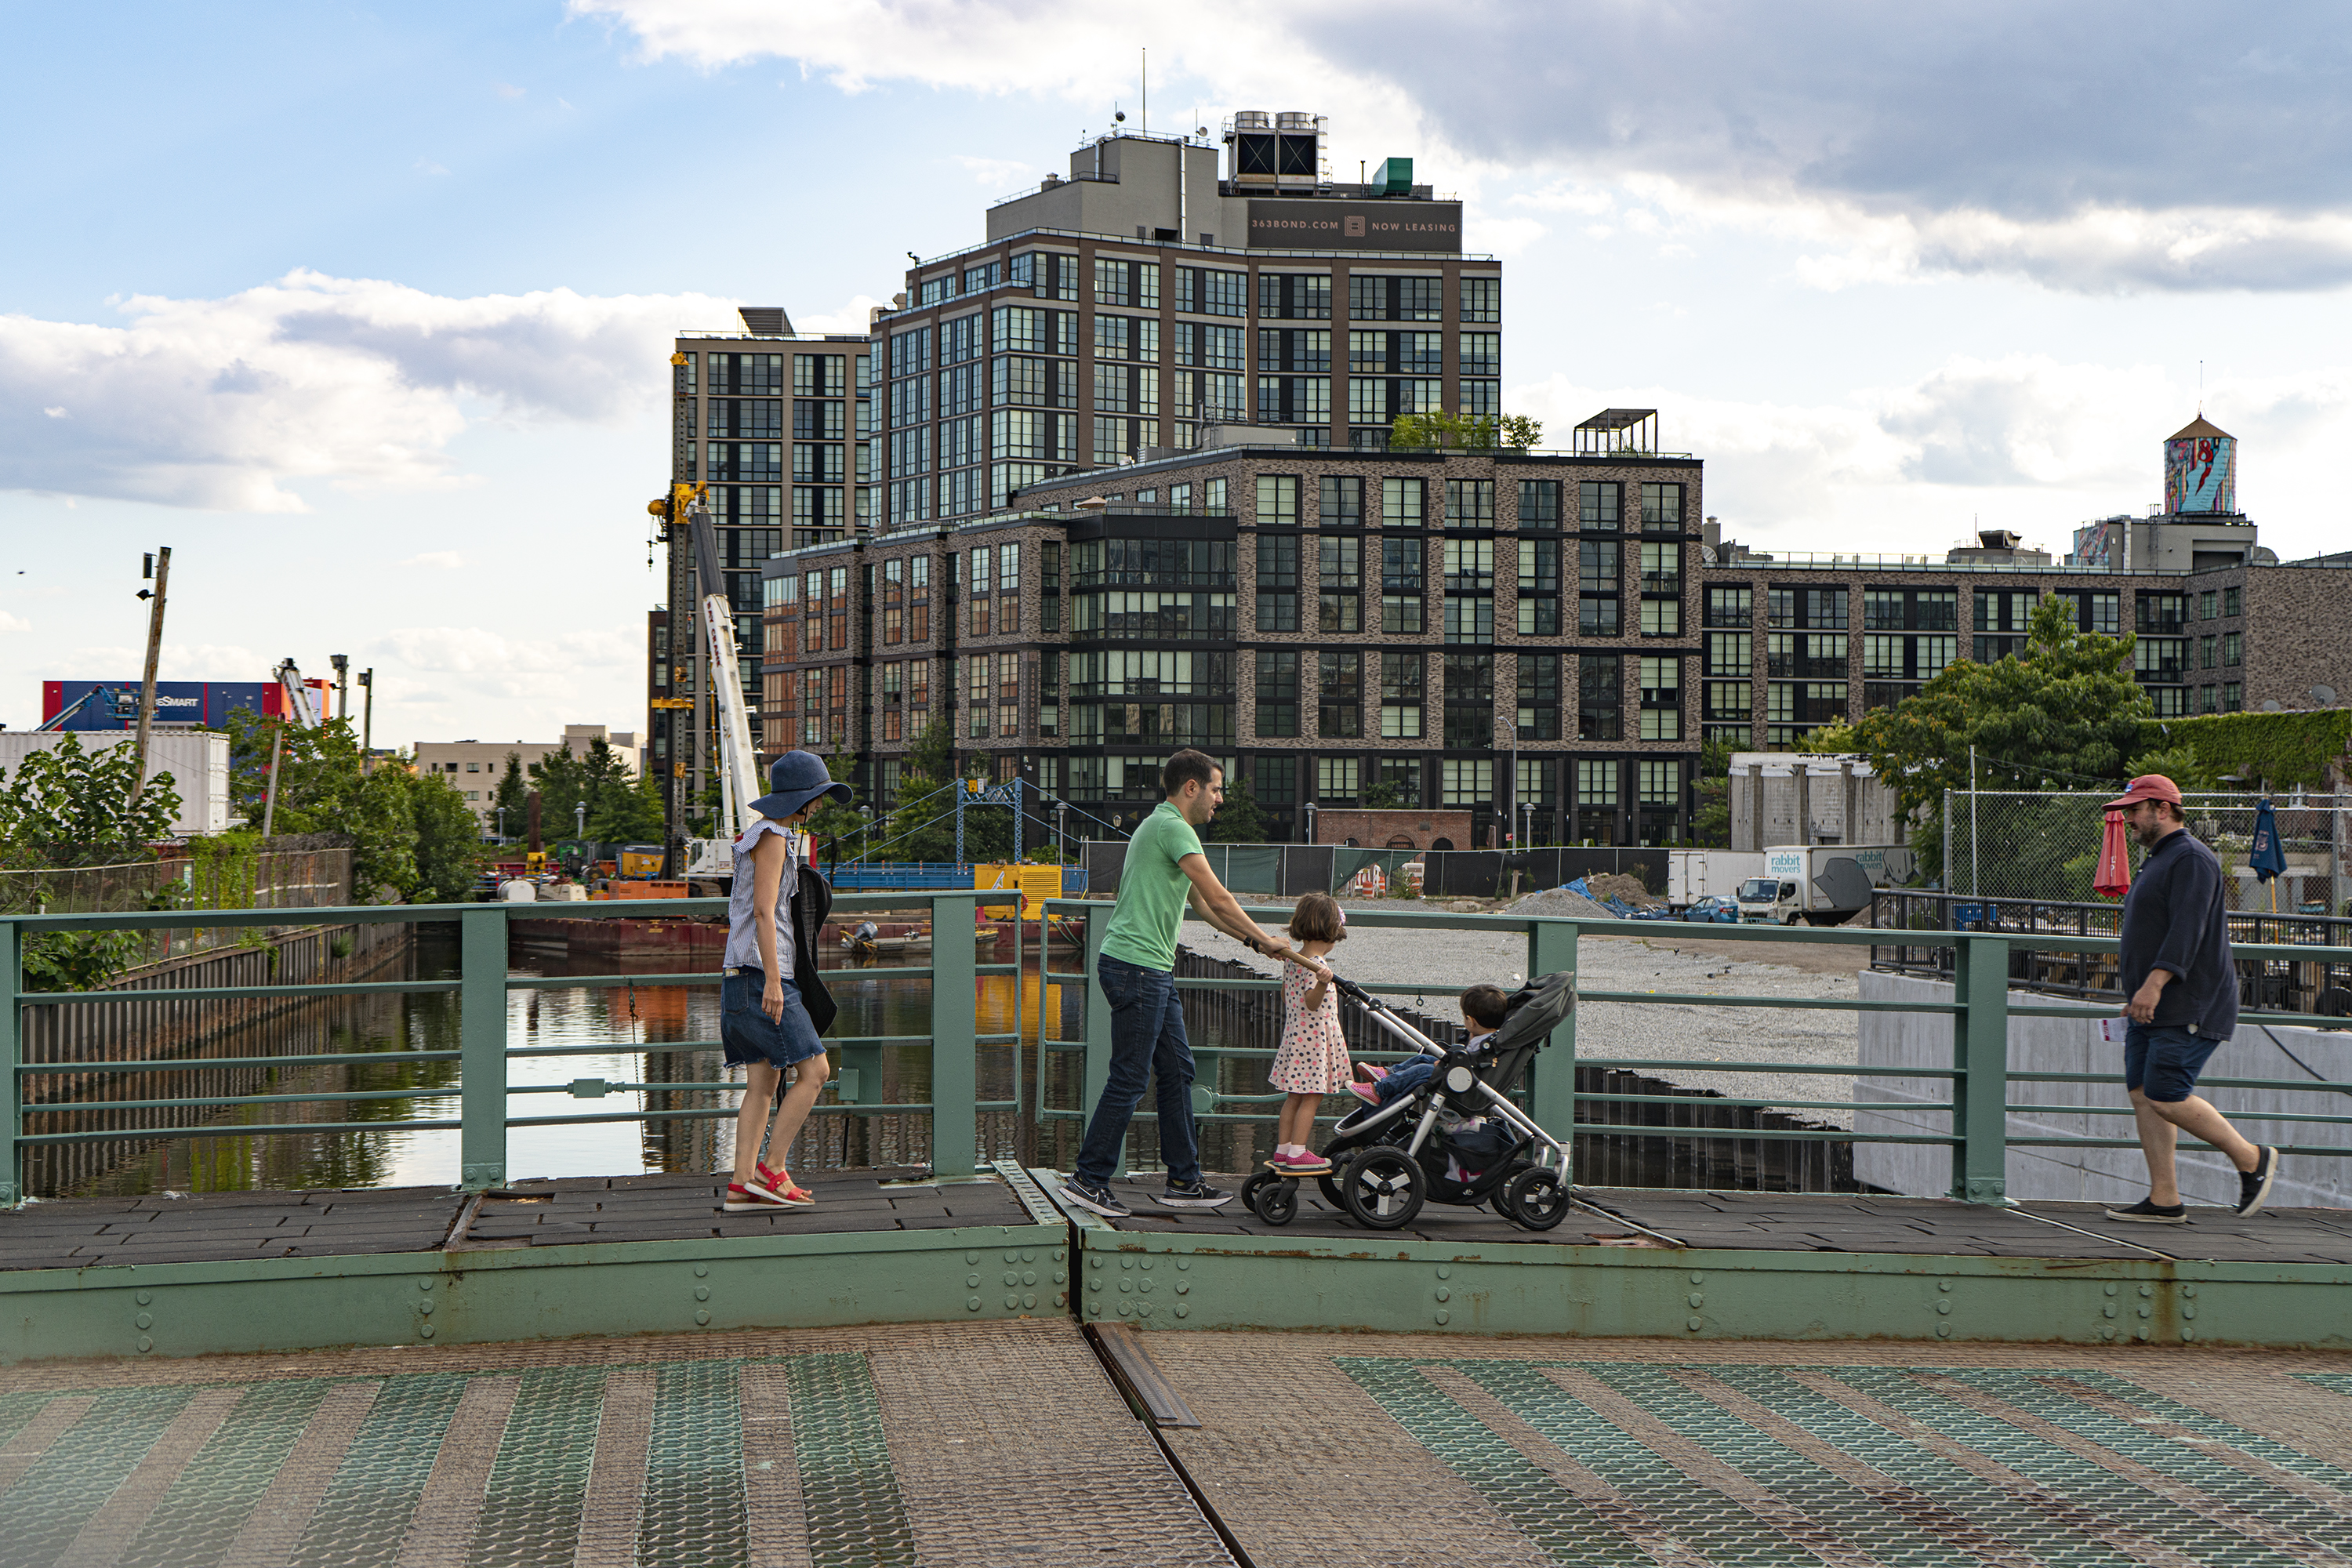 A family crosses the Union St. bridge over the Gowanus canal in the area proposed for rezoning.